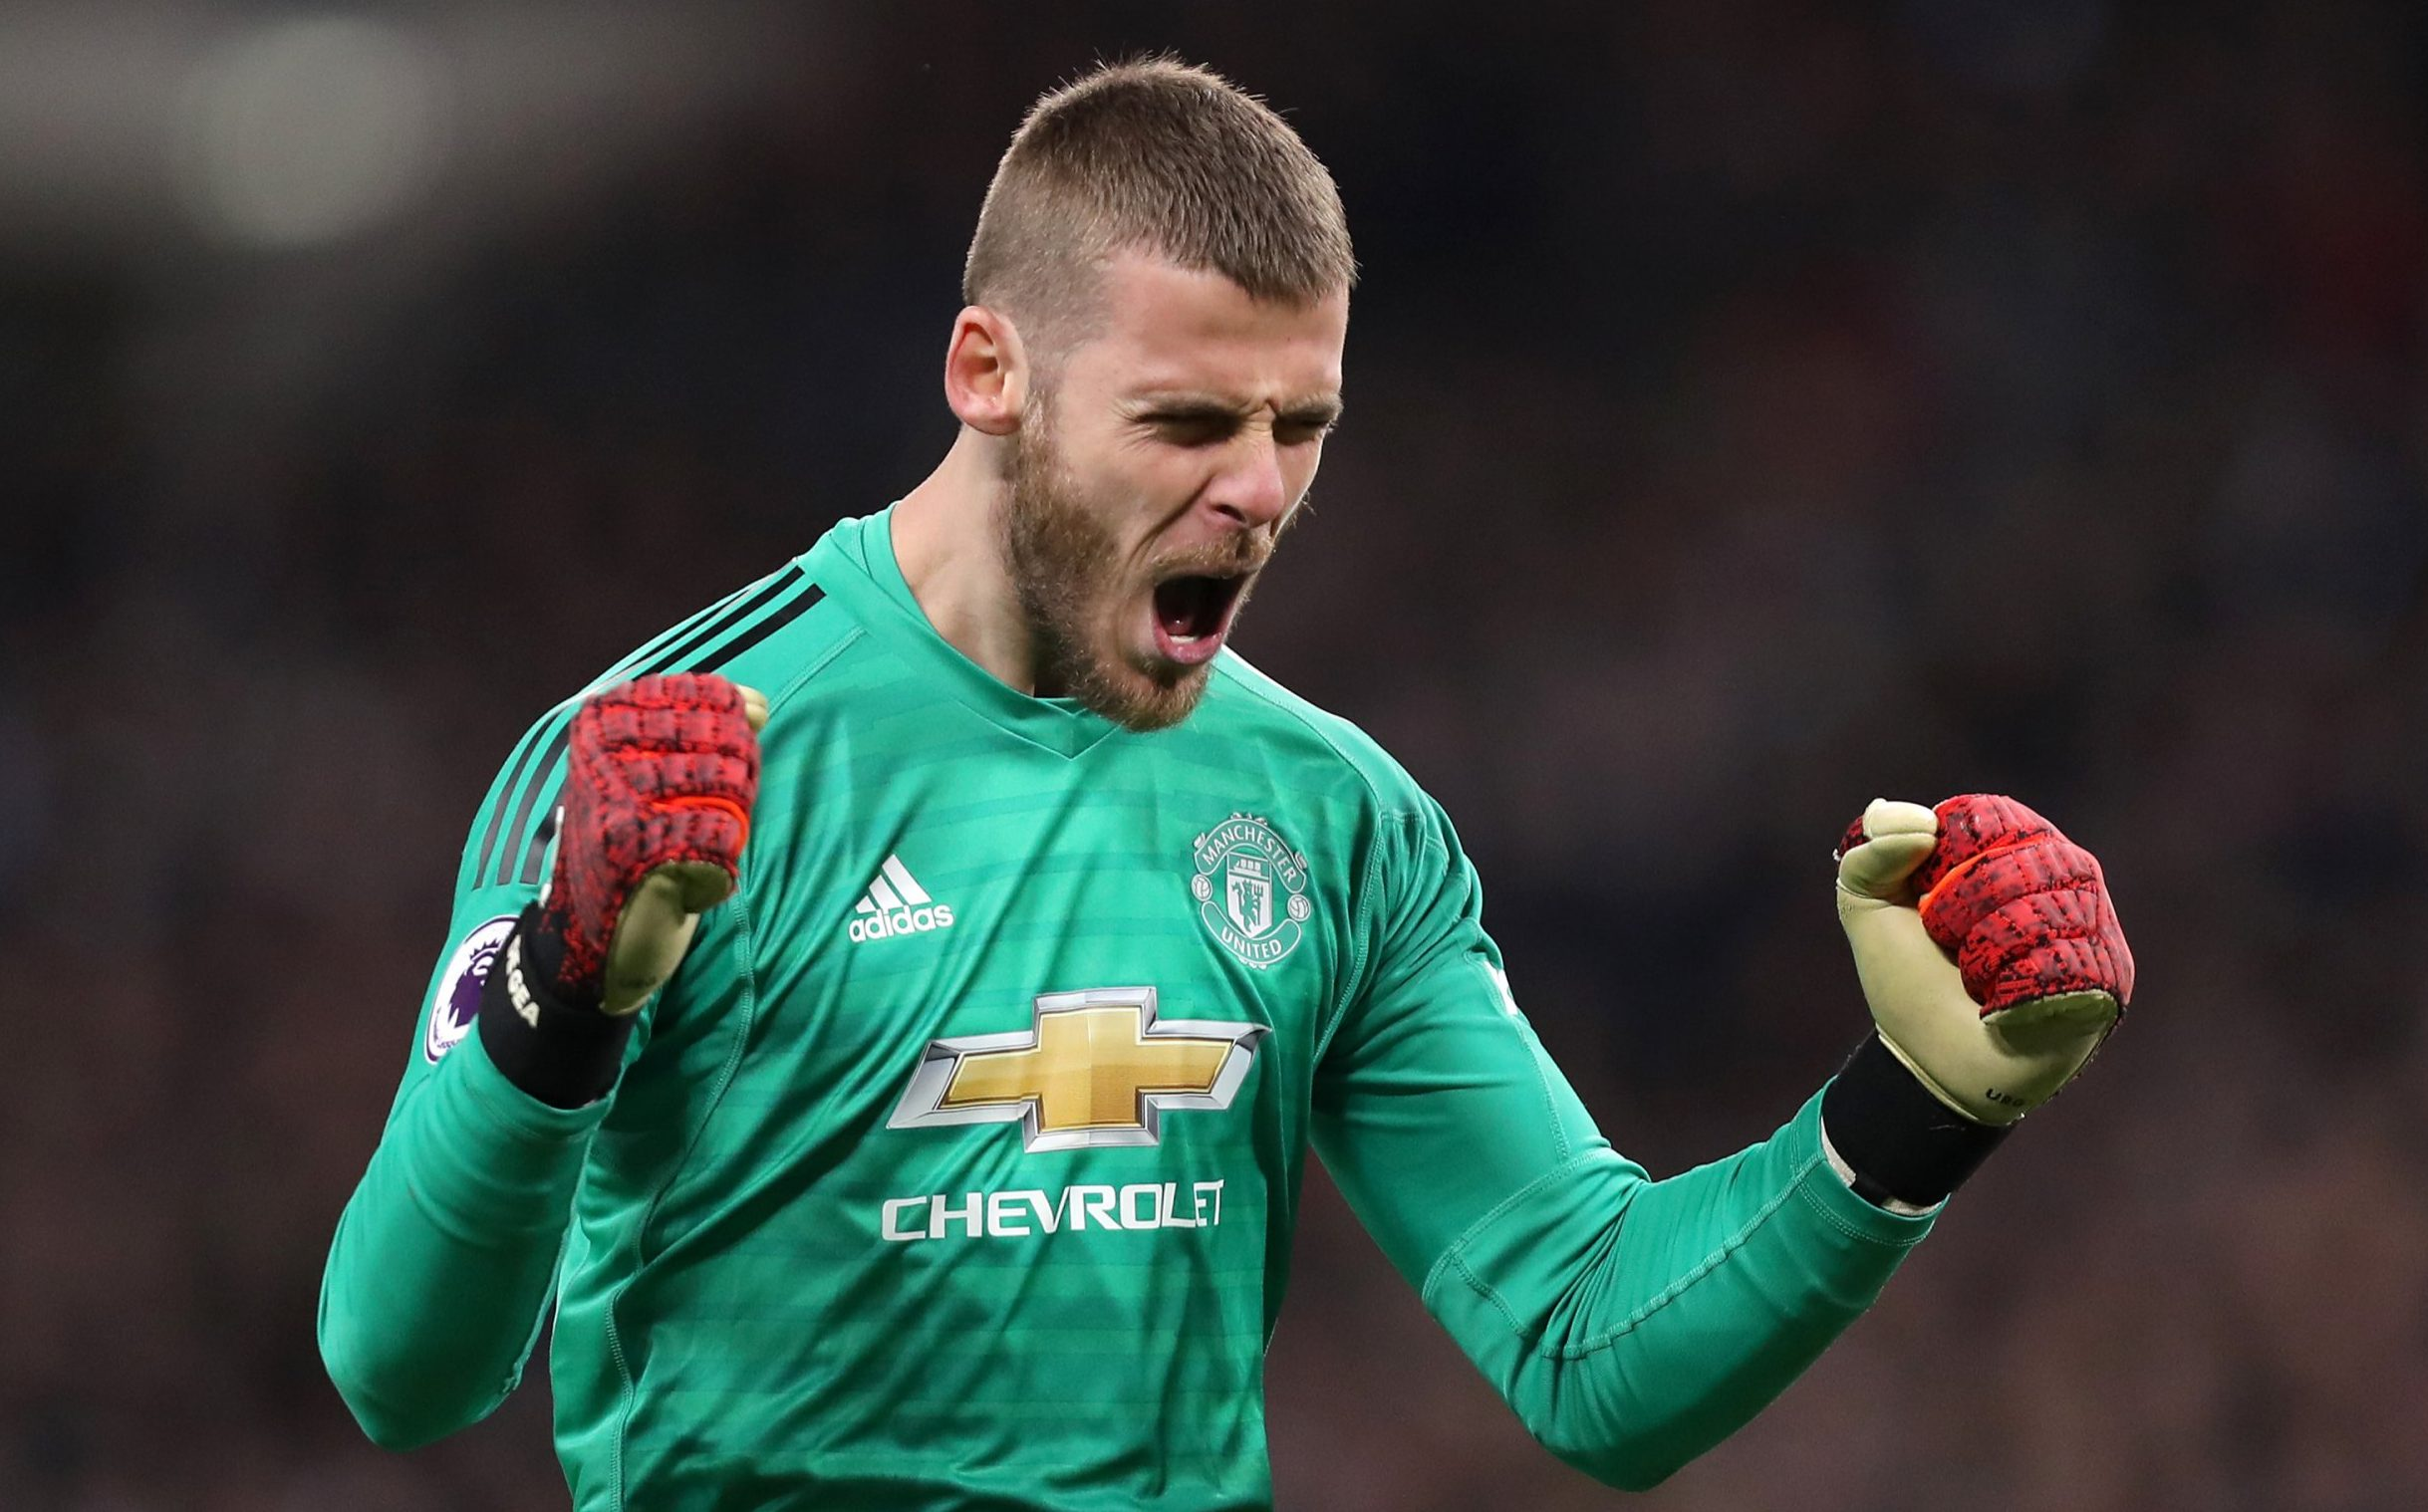 LONDON, ENGLAND - JANUARY 13: David De Gea of Manchester United celebrates his sides first goal during the Premier League match between Tottenham Hotspur and Manchester United at Wembley Stadium on January 13, 2019 in London, United Kingdom. (Photo by Tottenham Hotspur FC/Tottenham Hotspur FC via Getty Images)